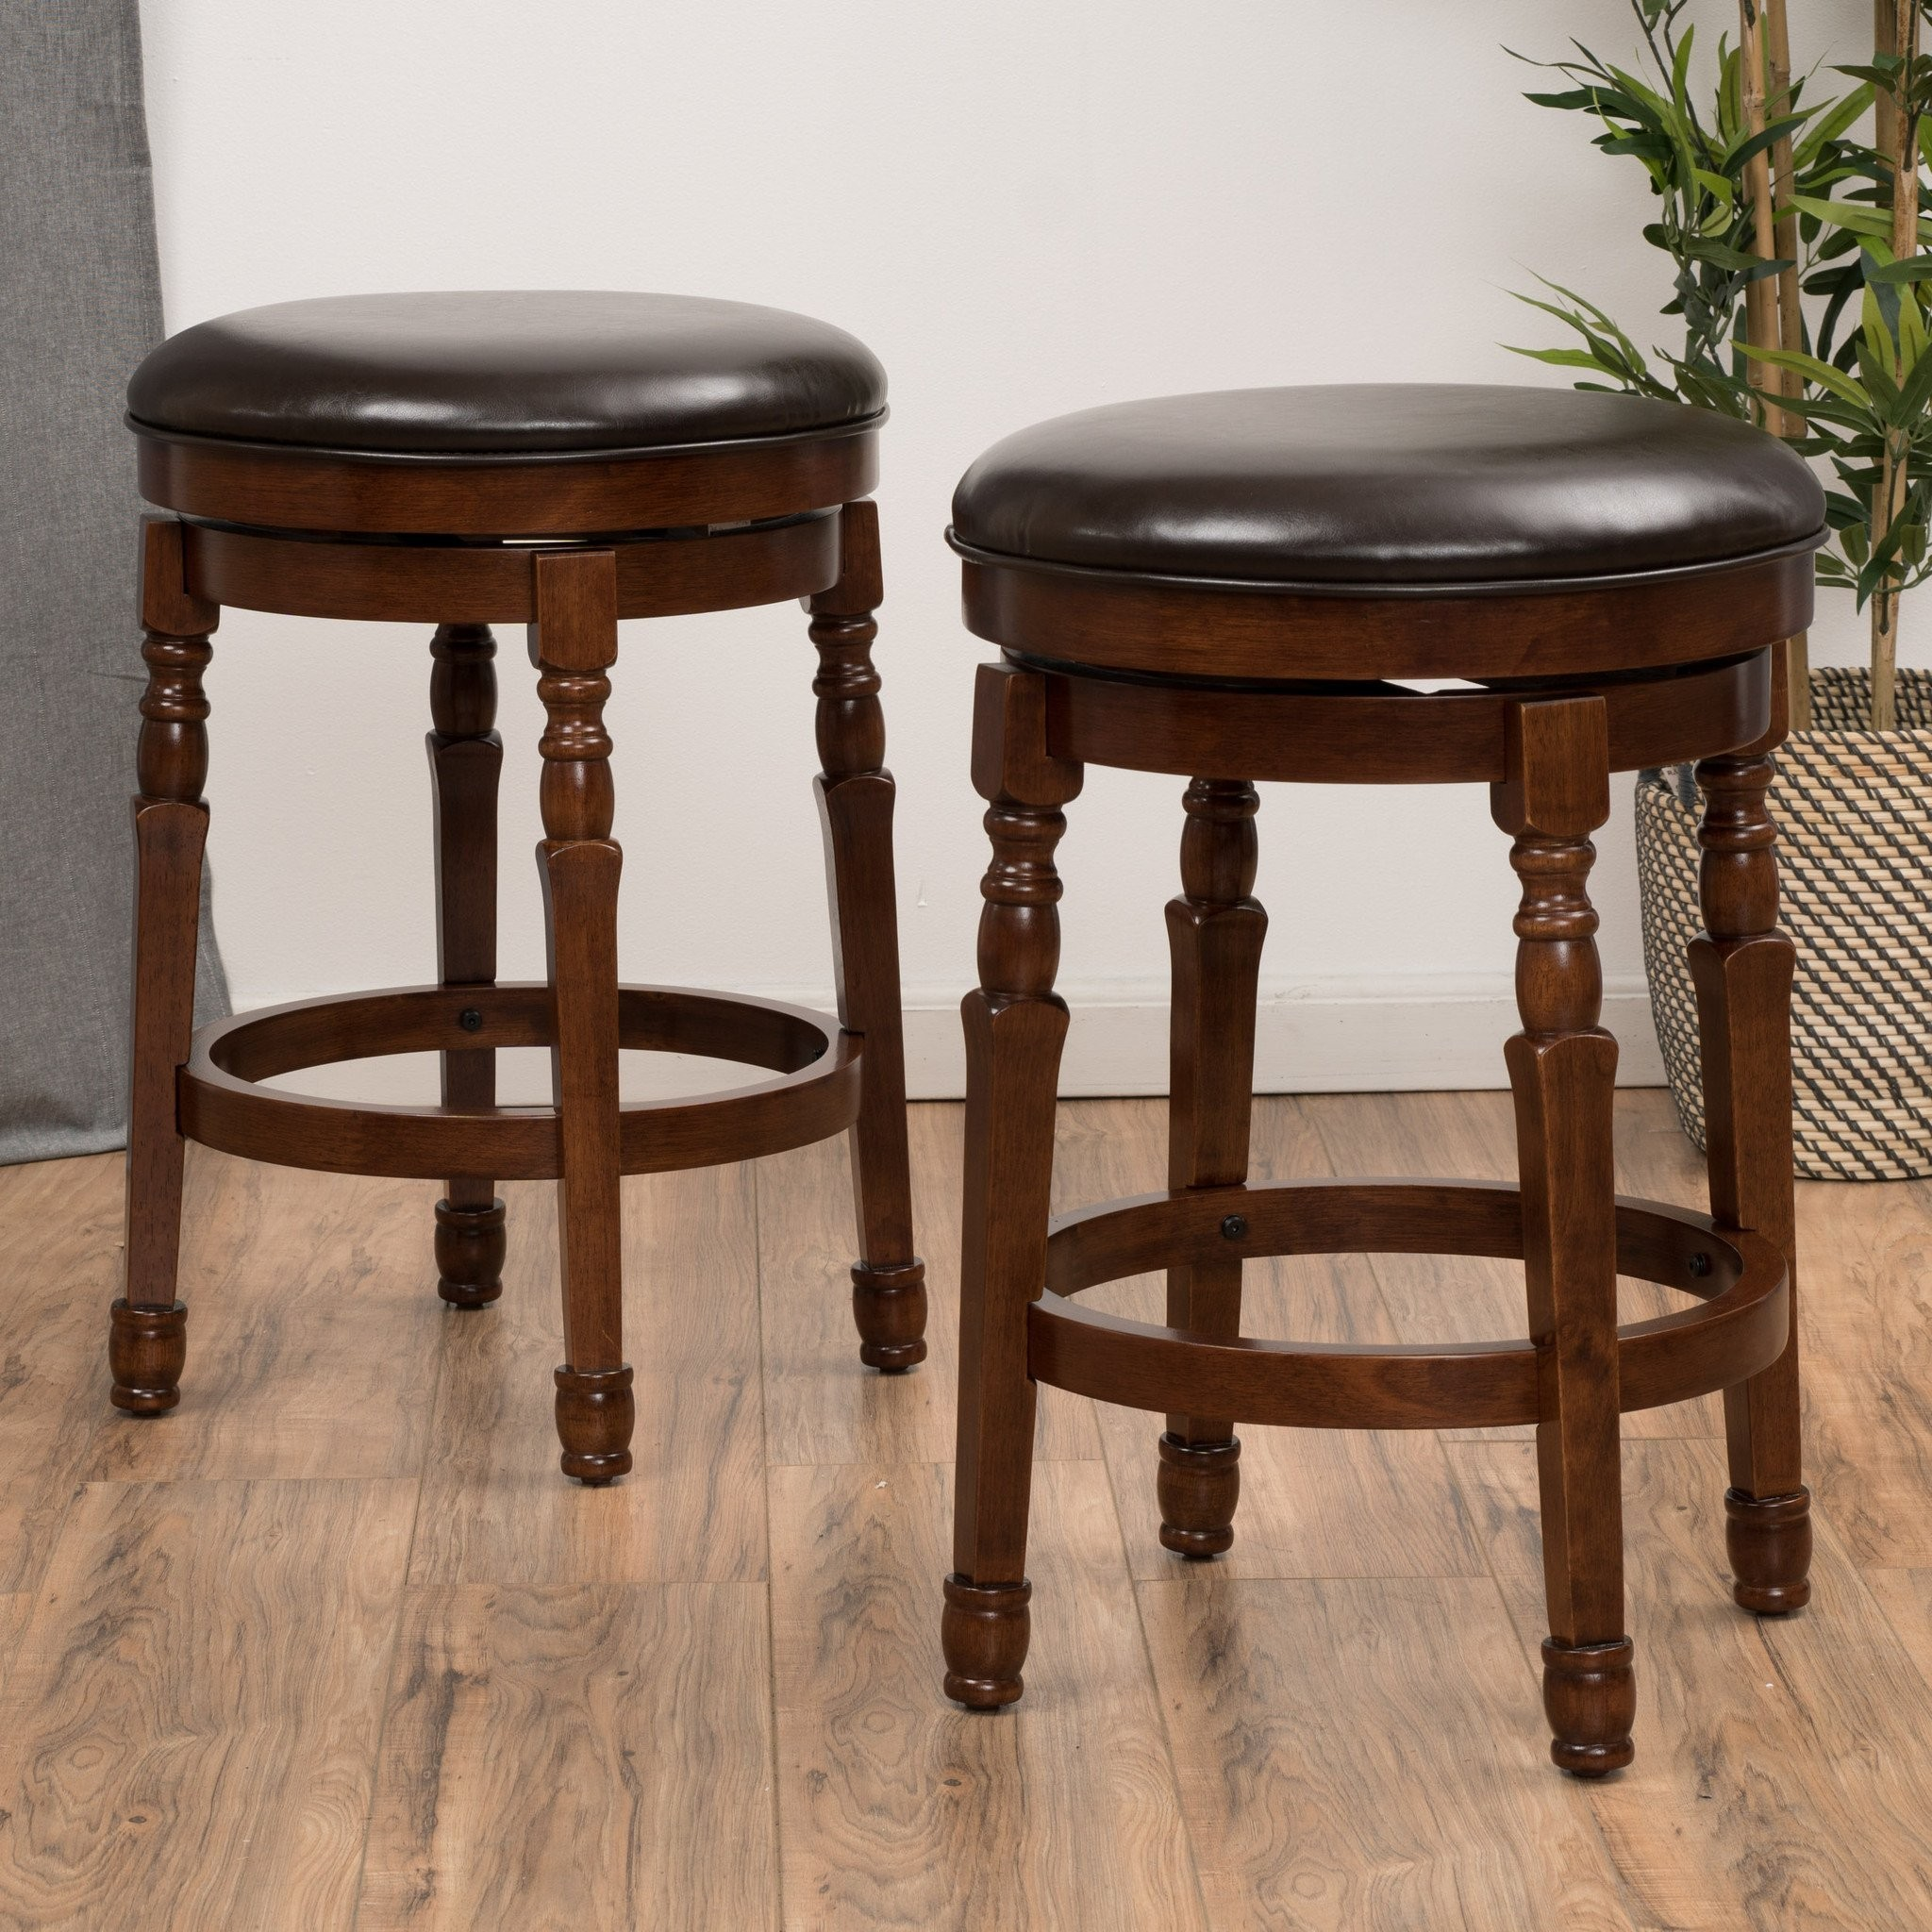 Jaxx Brown Leather Swivel Counter Stool (Set of 2)